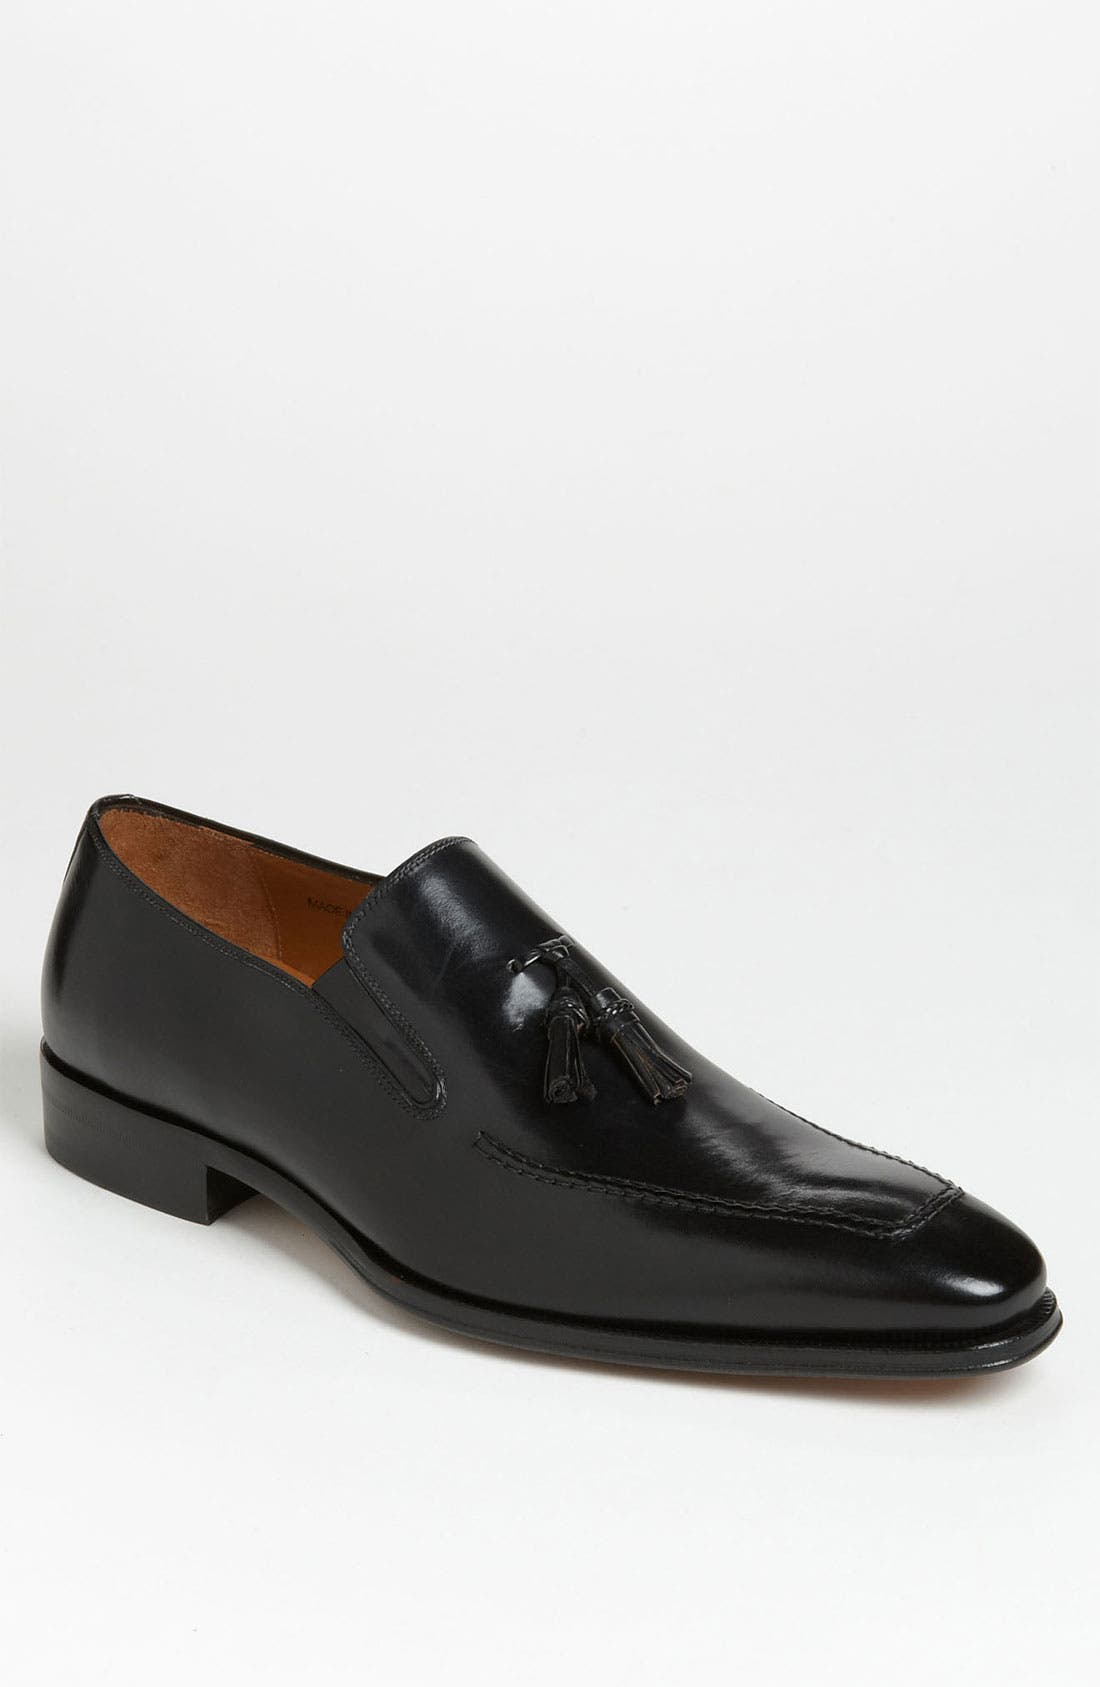 Main Image - Mezlan 'Davide' Tassel Loafer